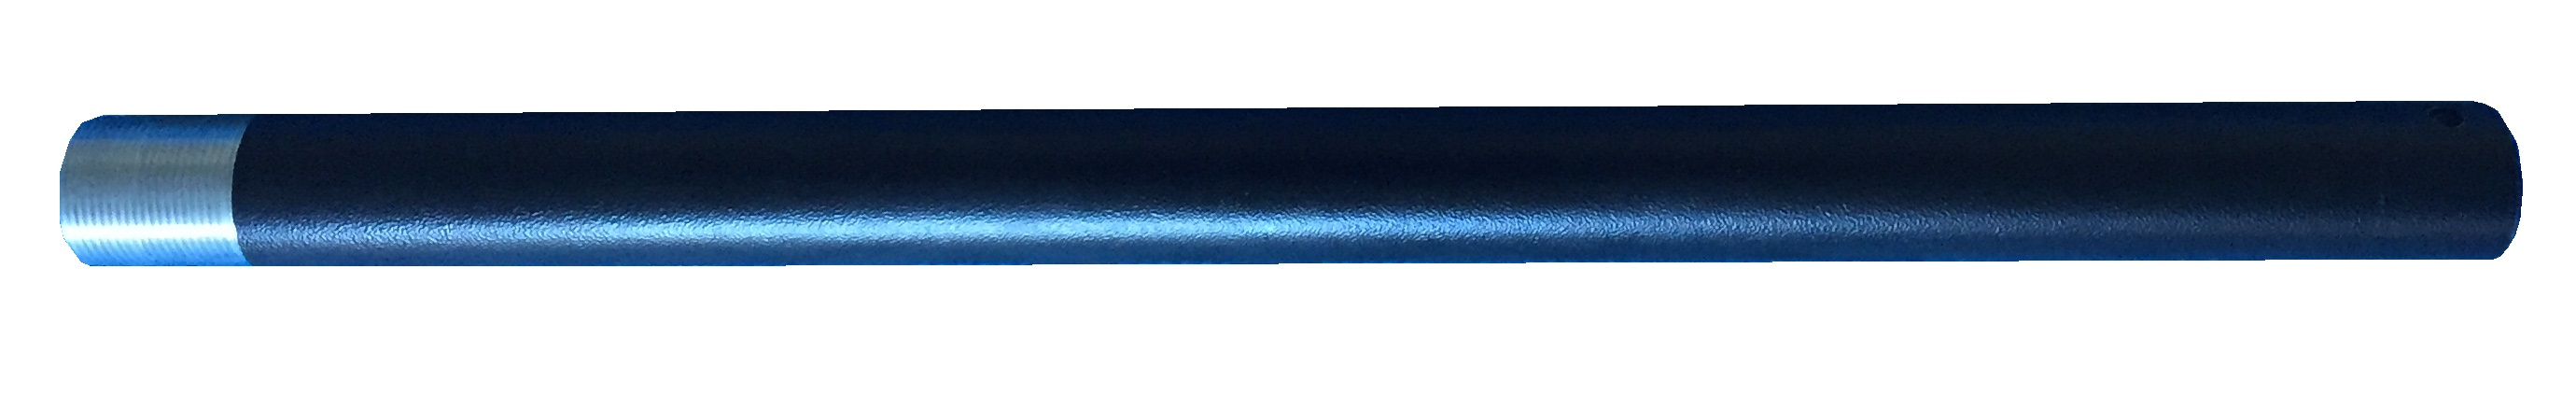 1200mm Extension Pole